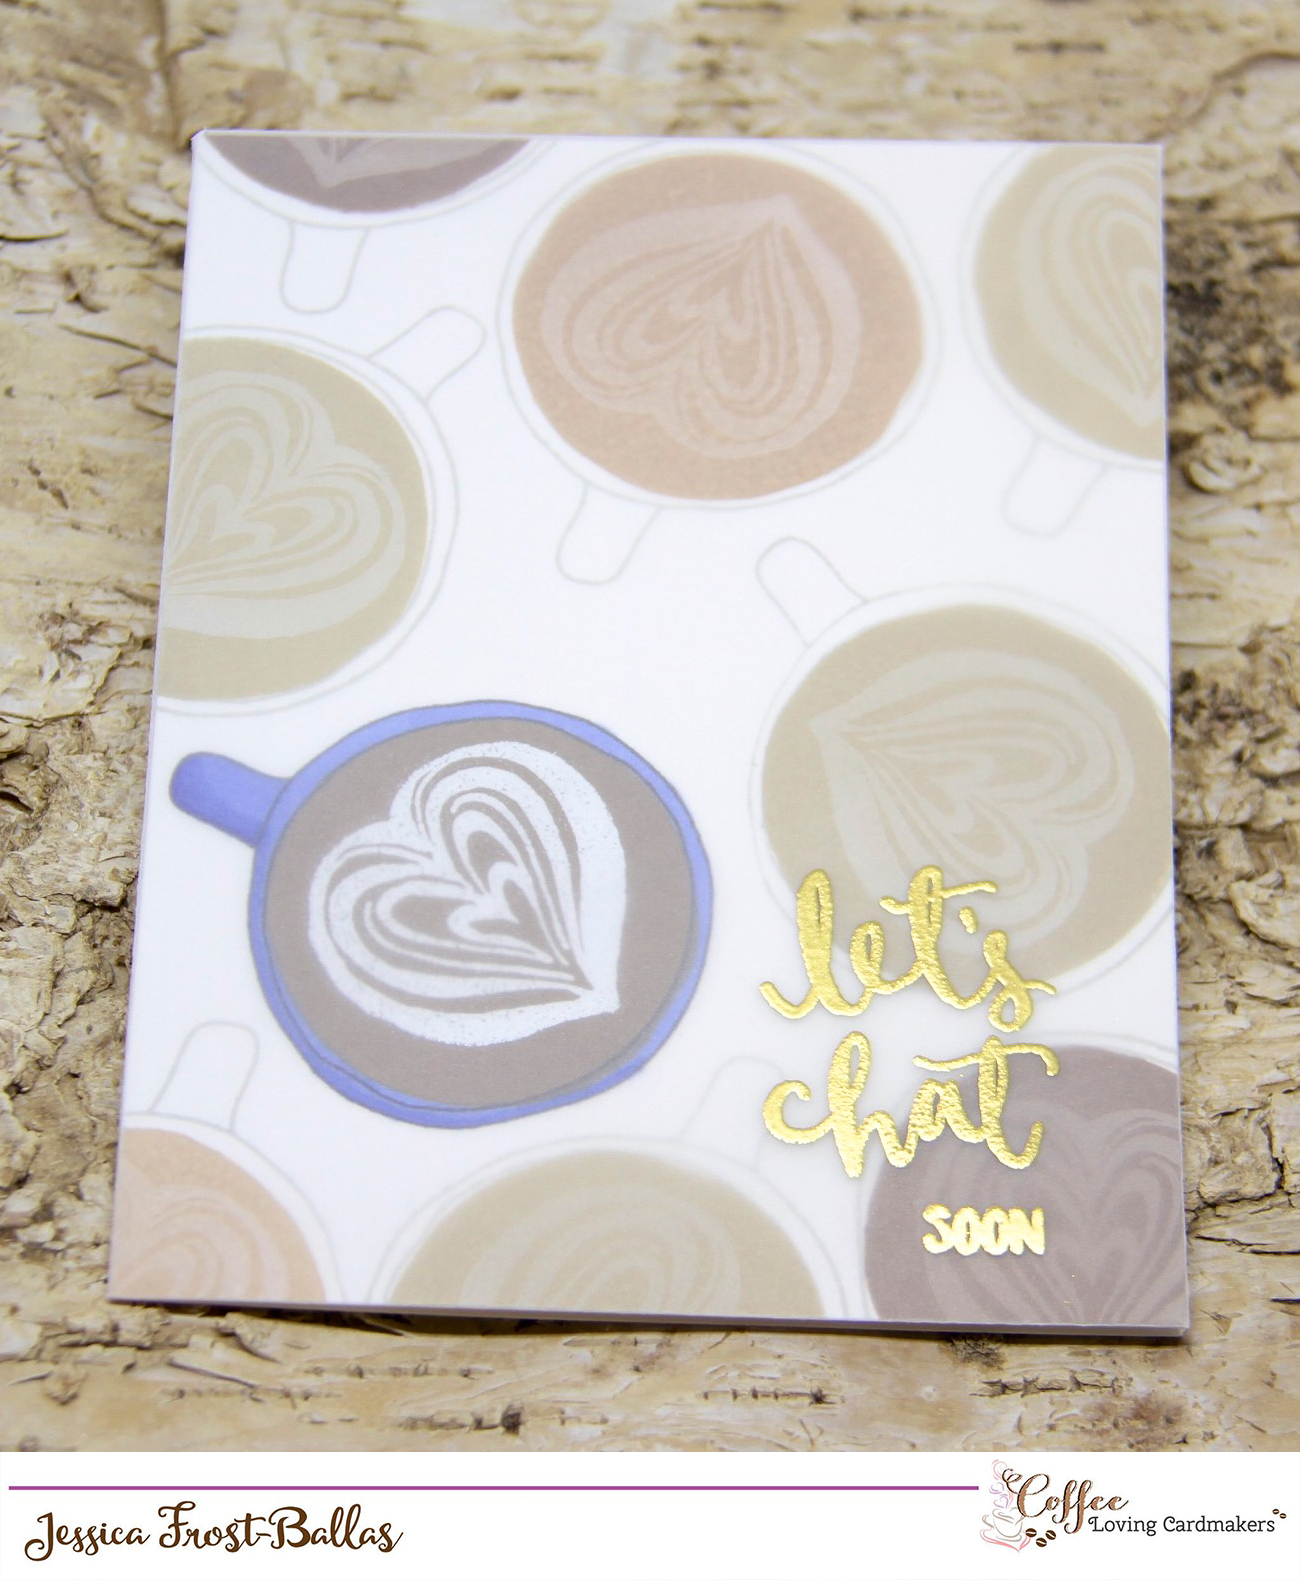 Coffee Loving Cardmakers Sponsor Solo: Concord & 9th